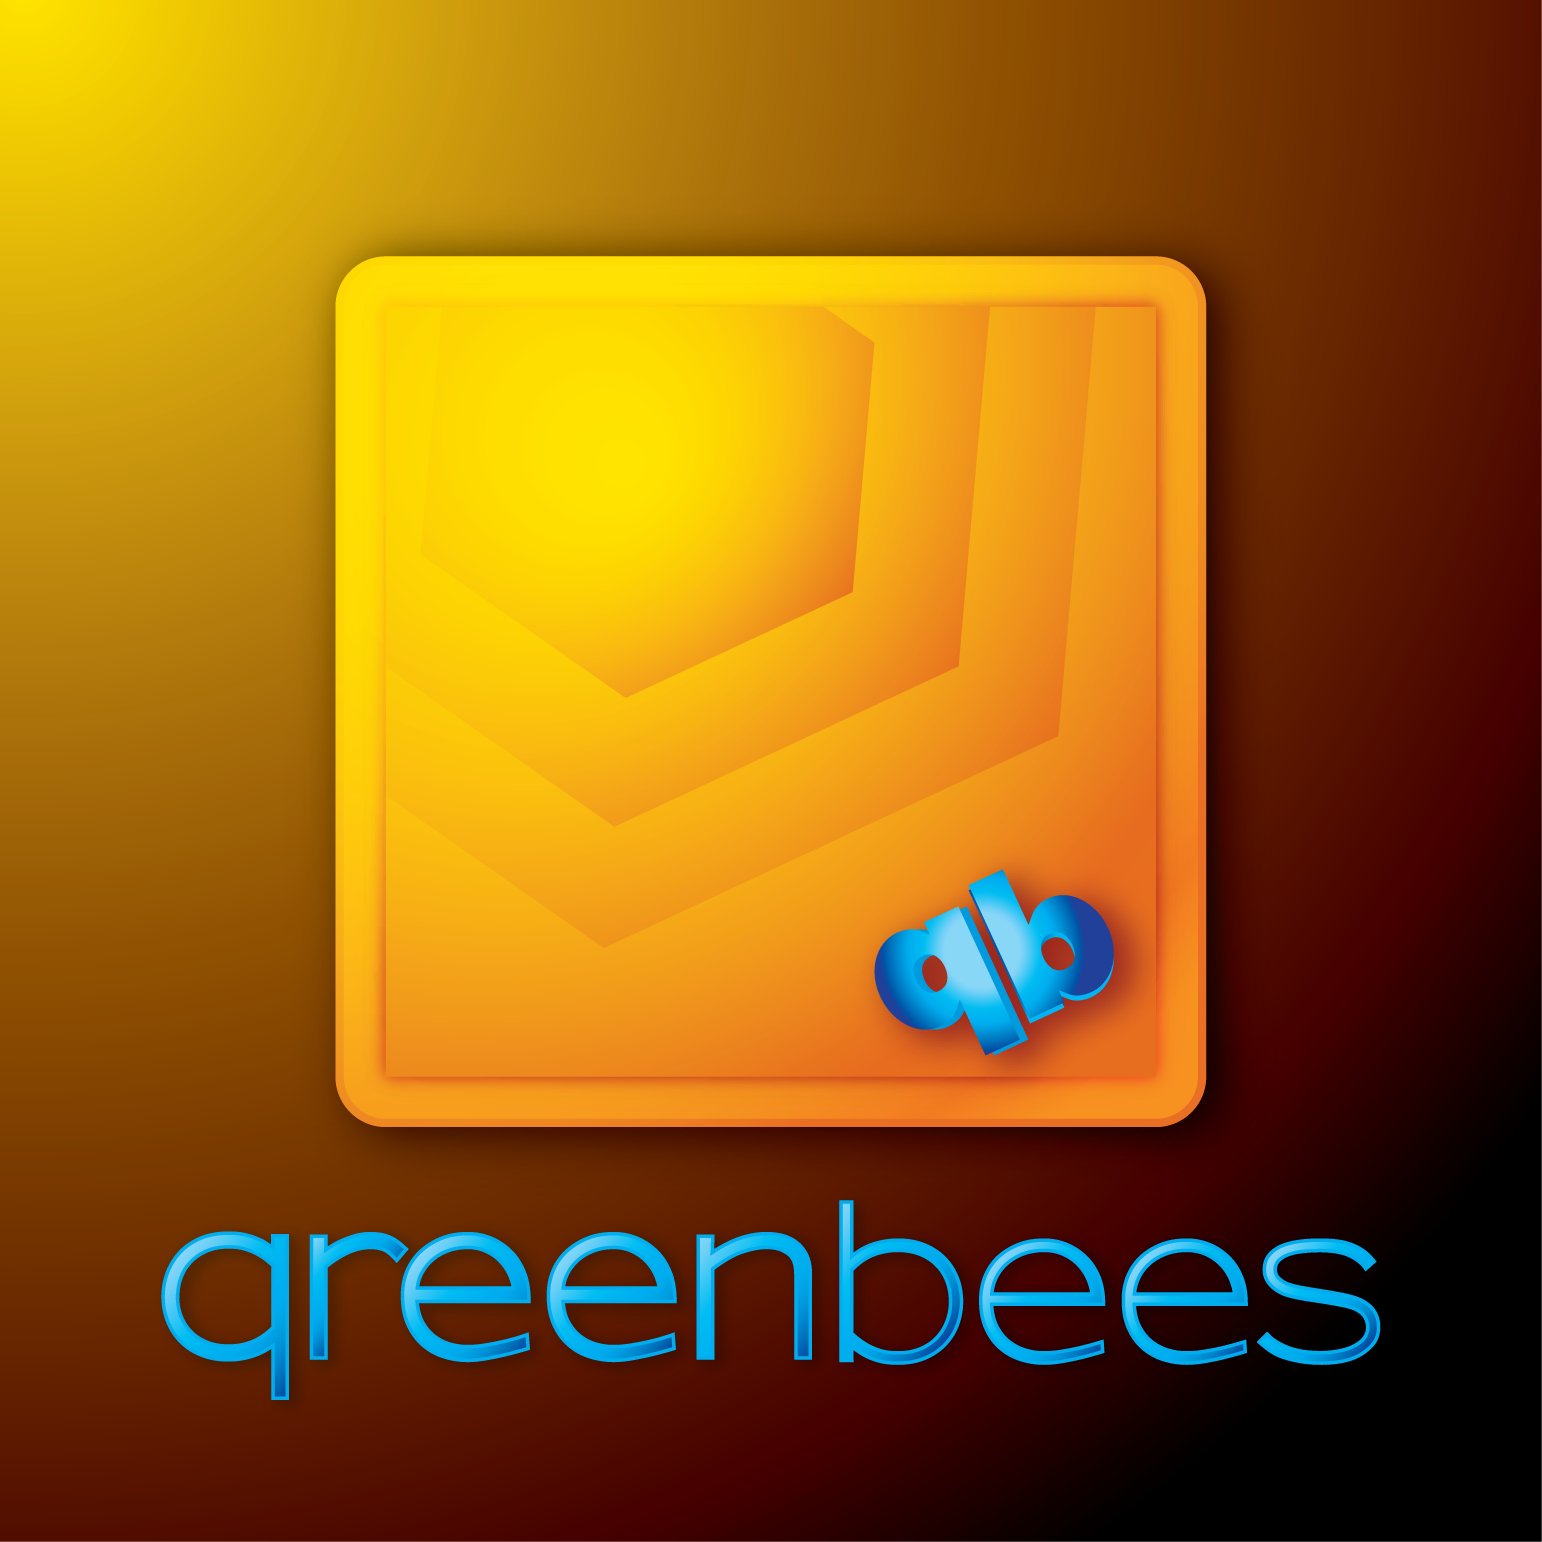 Logo Design by Teresa Abney - Entry No. 258 in the Logo Design Contest Greenbees Logo Design.